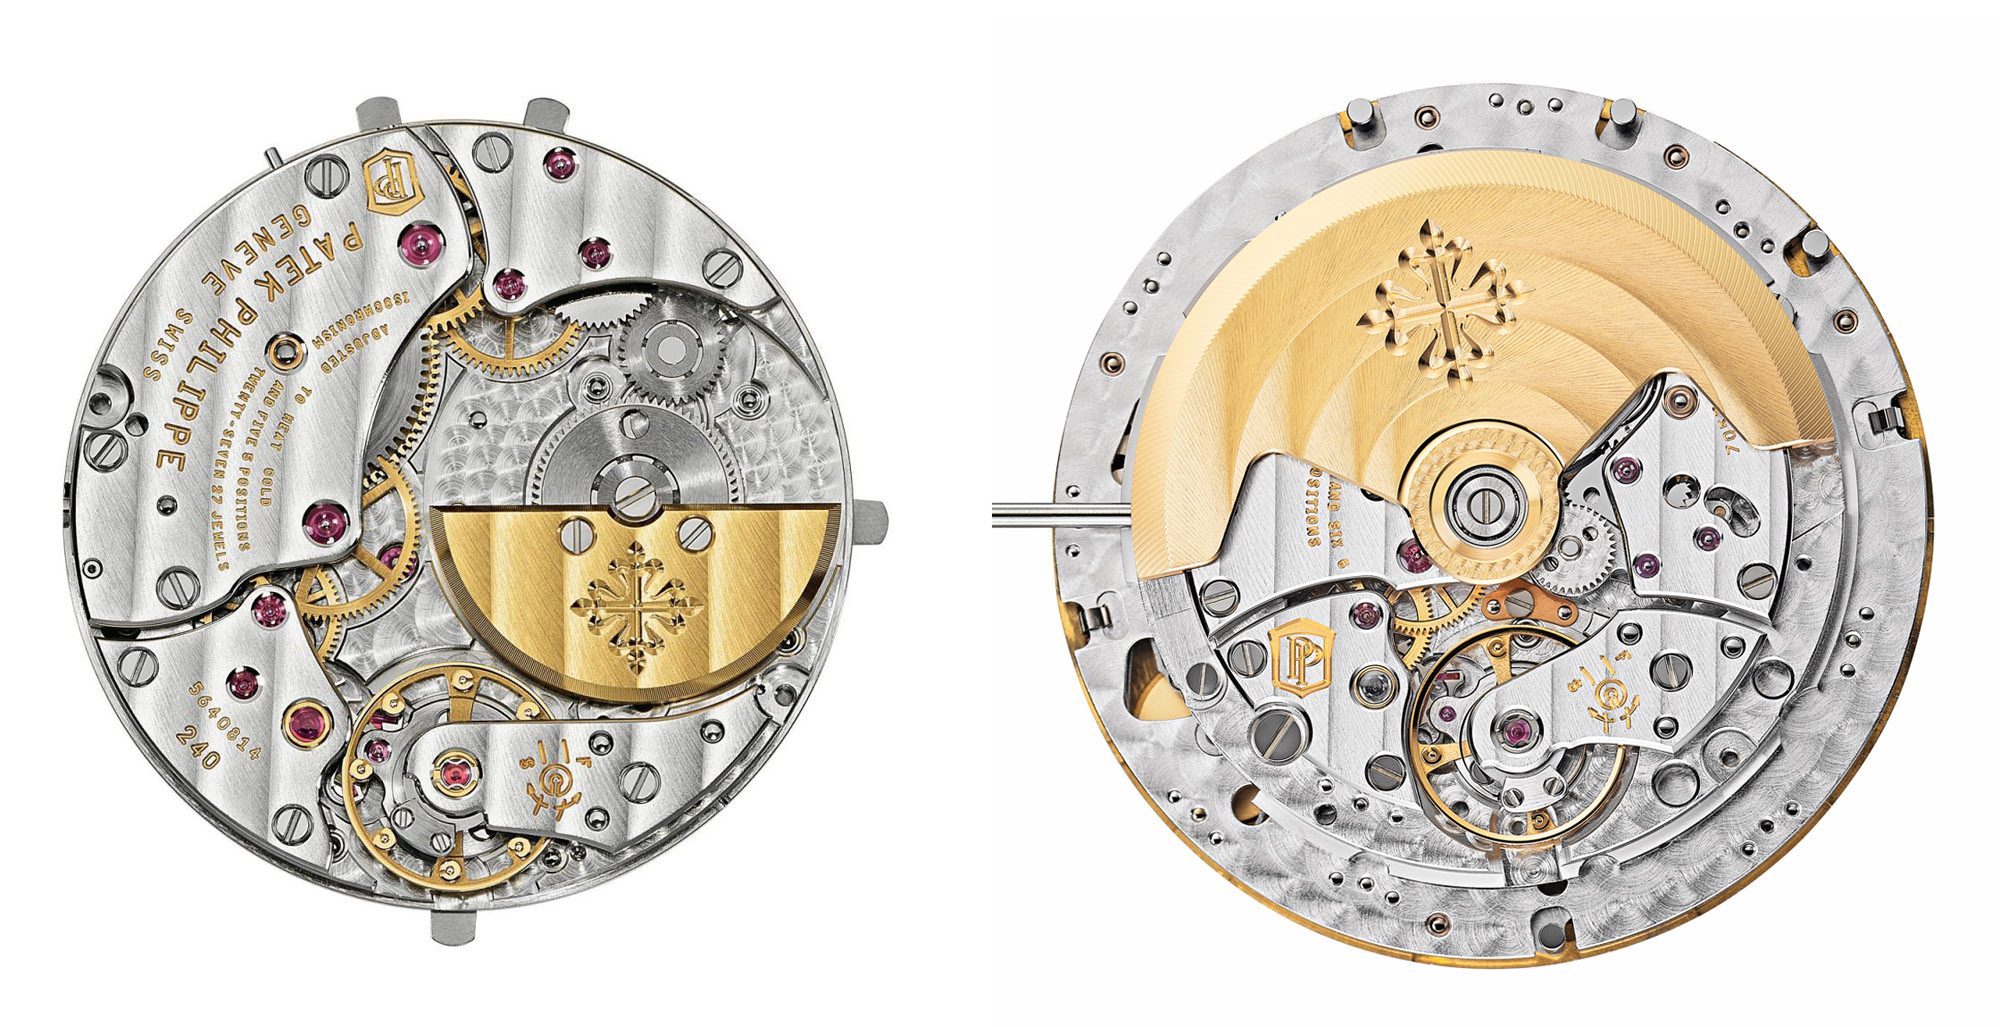 Patek Philippe Cal 240 324 automatic movement micro central rotor